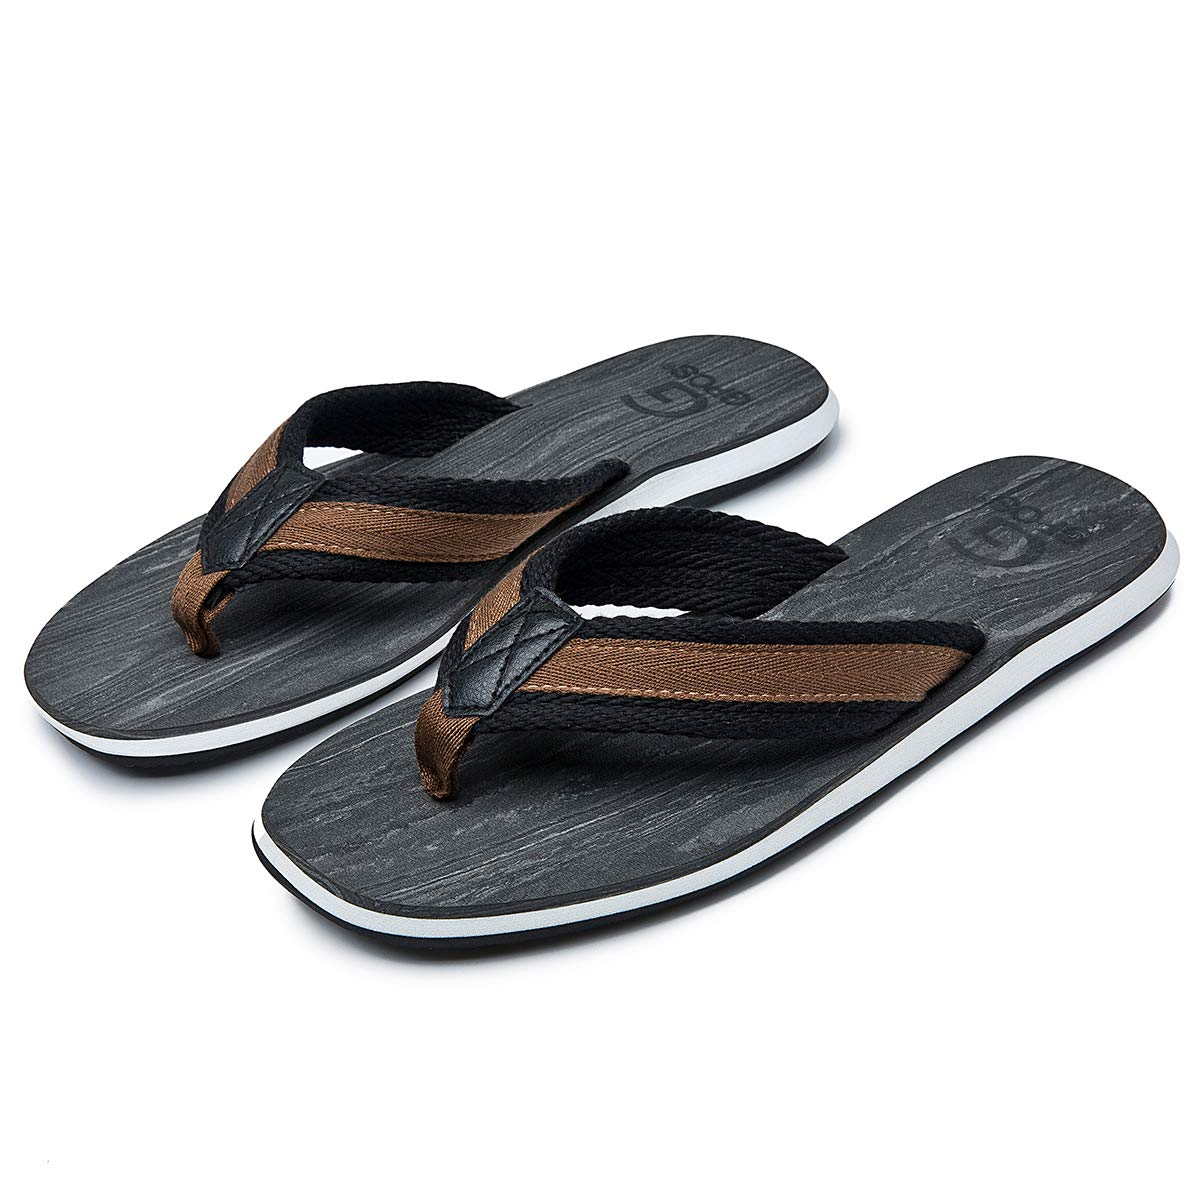 classcic more photos coupon codes Adokoo Mens Flip Flops Thong Sandals Beach Slippers Comfortable Summer Shoes